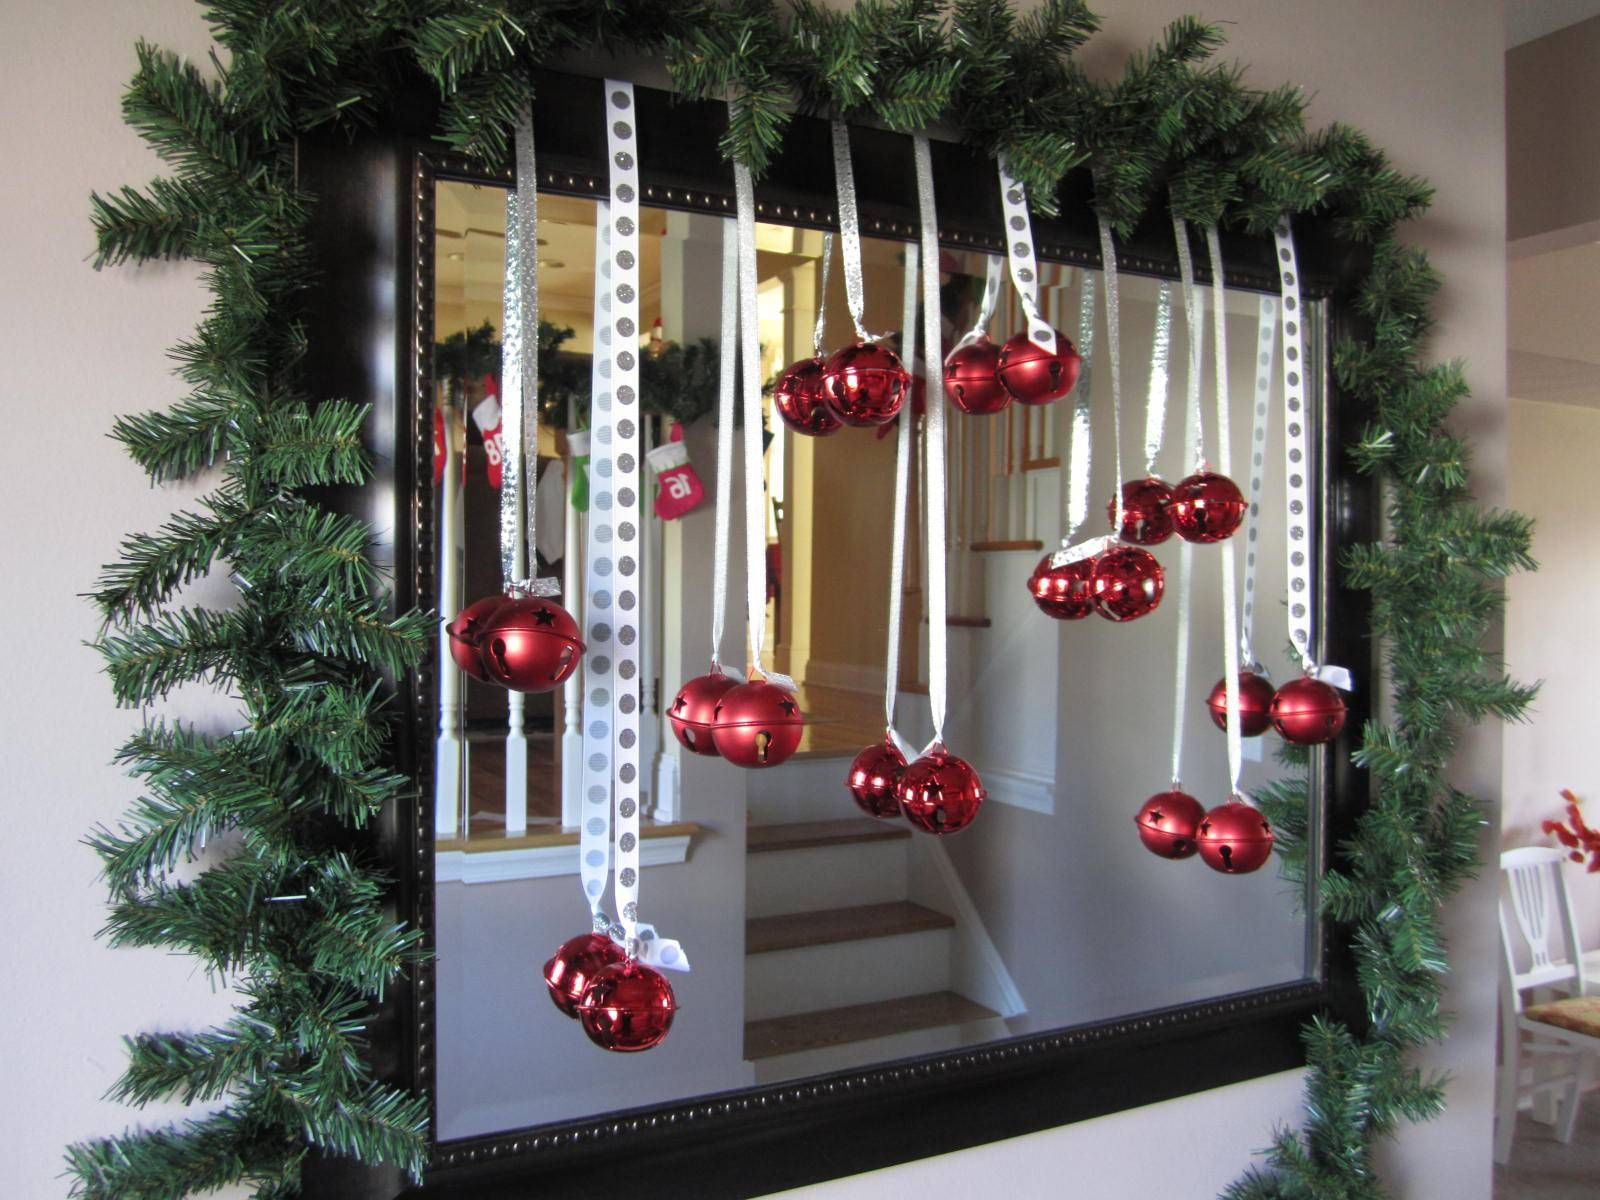 Entry way mirror decorated for Christmas with